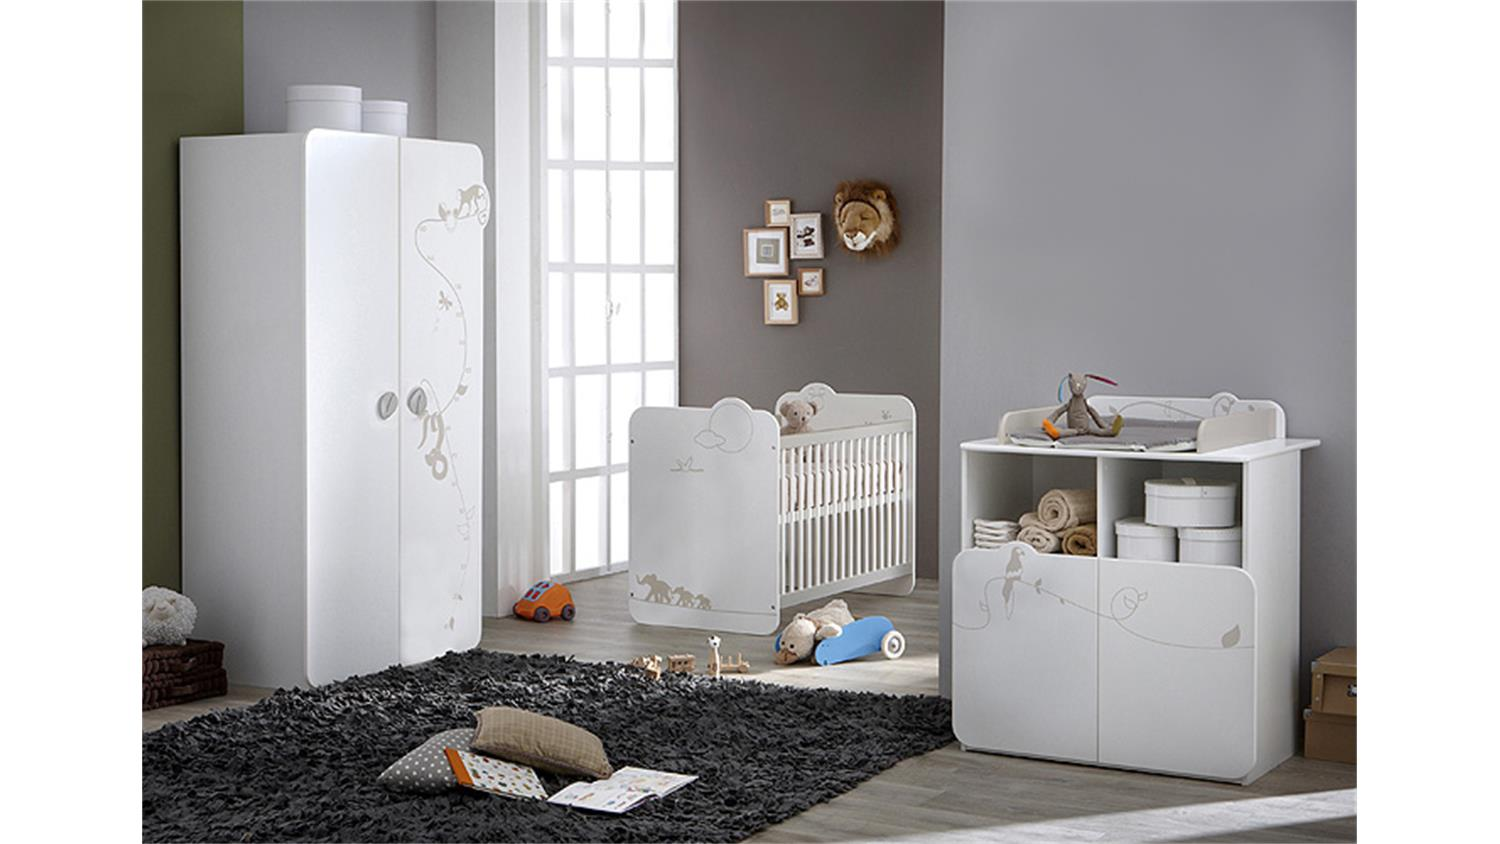 babyzimmerset jungle kinderzimmer wei mit dschungelmotiv. Black Bedroom Furniture Sets. Home Design Ideas